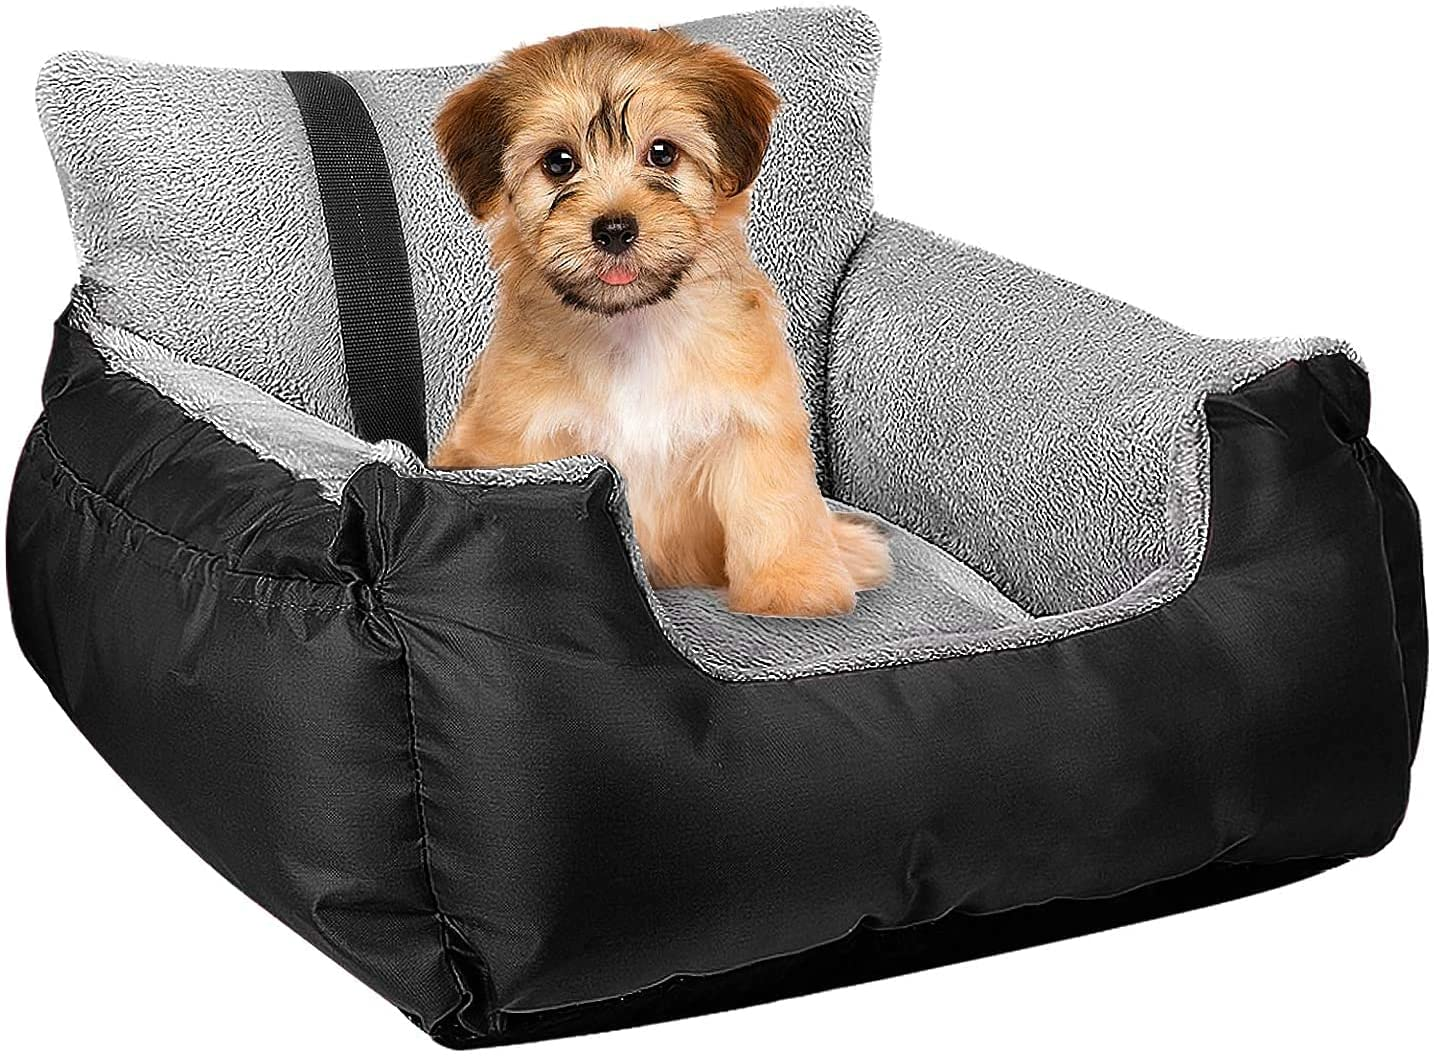 Dog Car Bed Puppy Booster Travel Atlanta Mall S Fashion Seat with Carrier